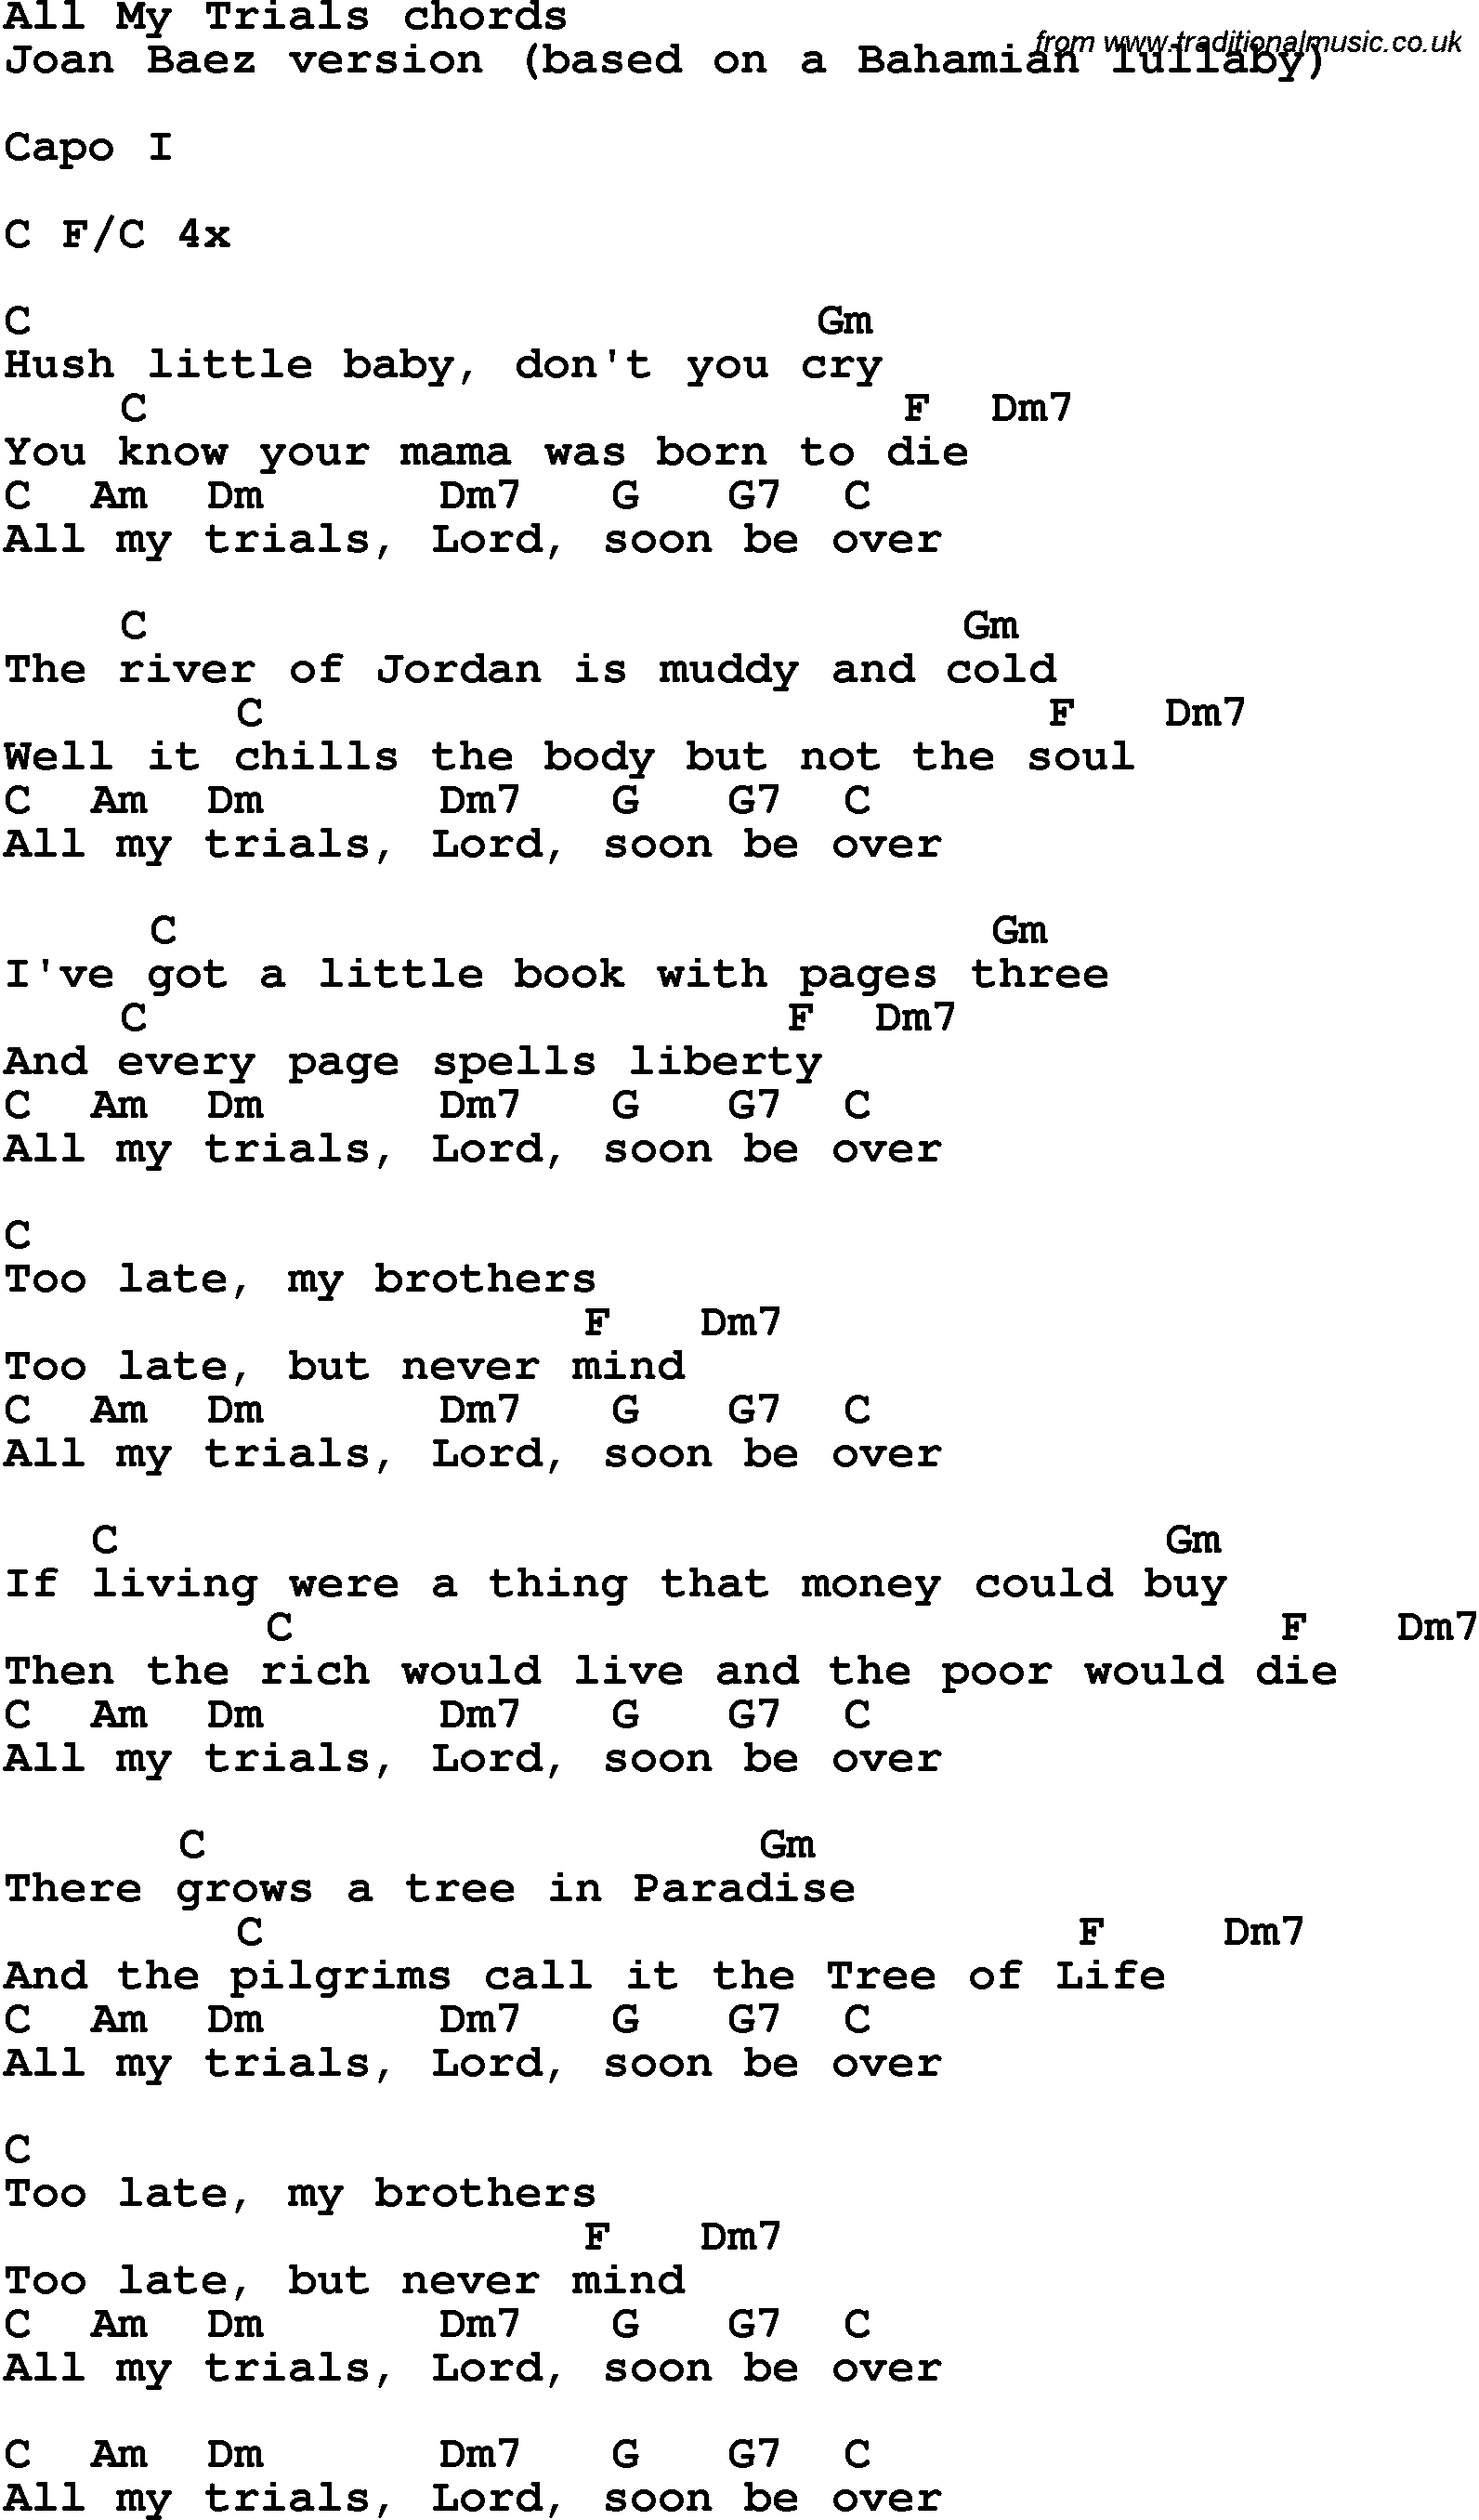 Simple Man Chords Song Lyrics With Guitar Chords For All My Trials Joan Baez